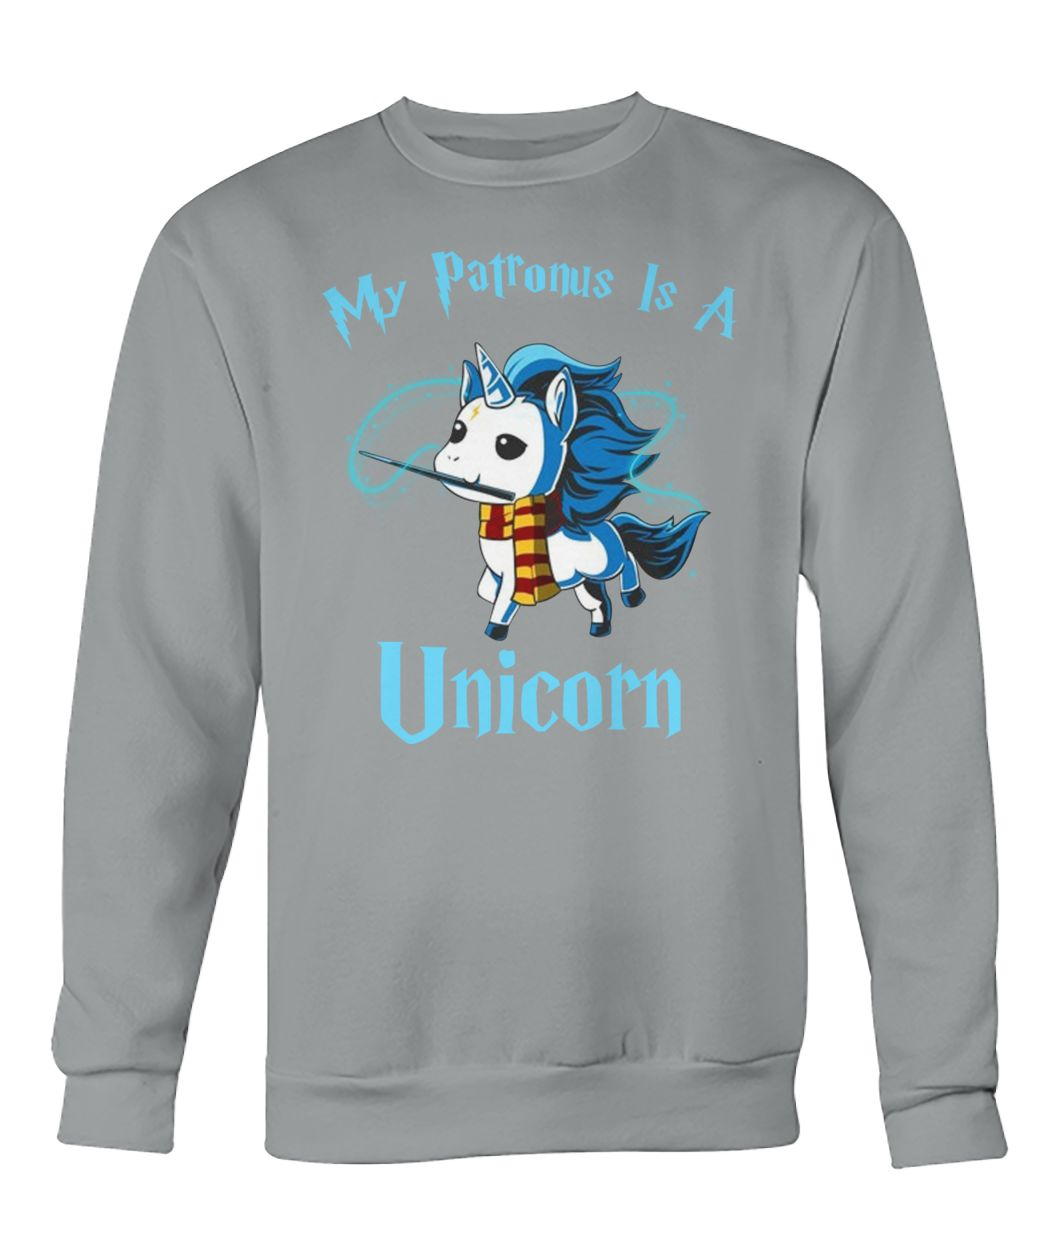 My patronus is a unicorn crew neck sweatshirt